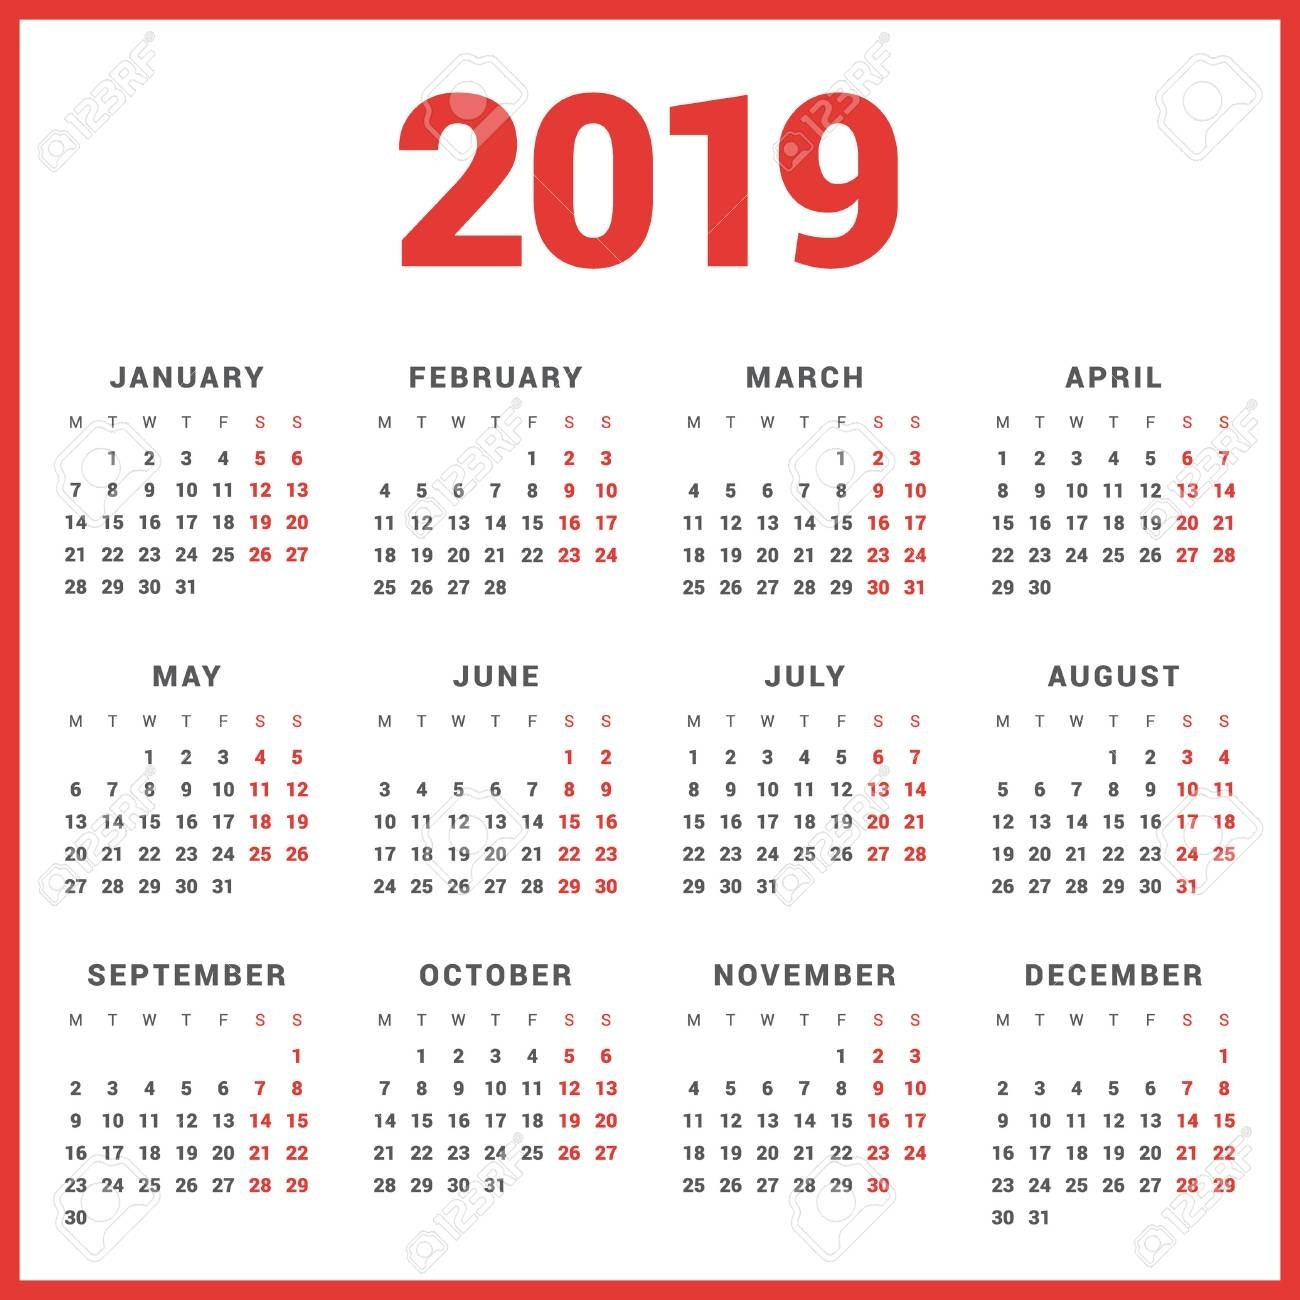 Calendar For 2019 Year On White Background. Week Starts Monday